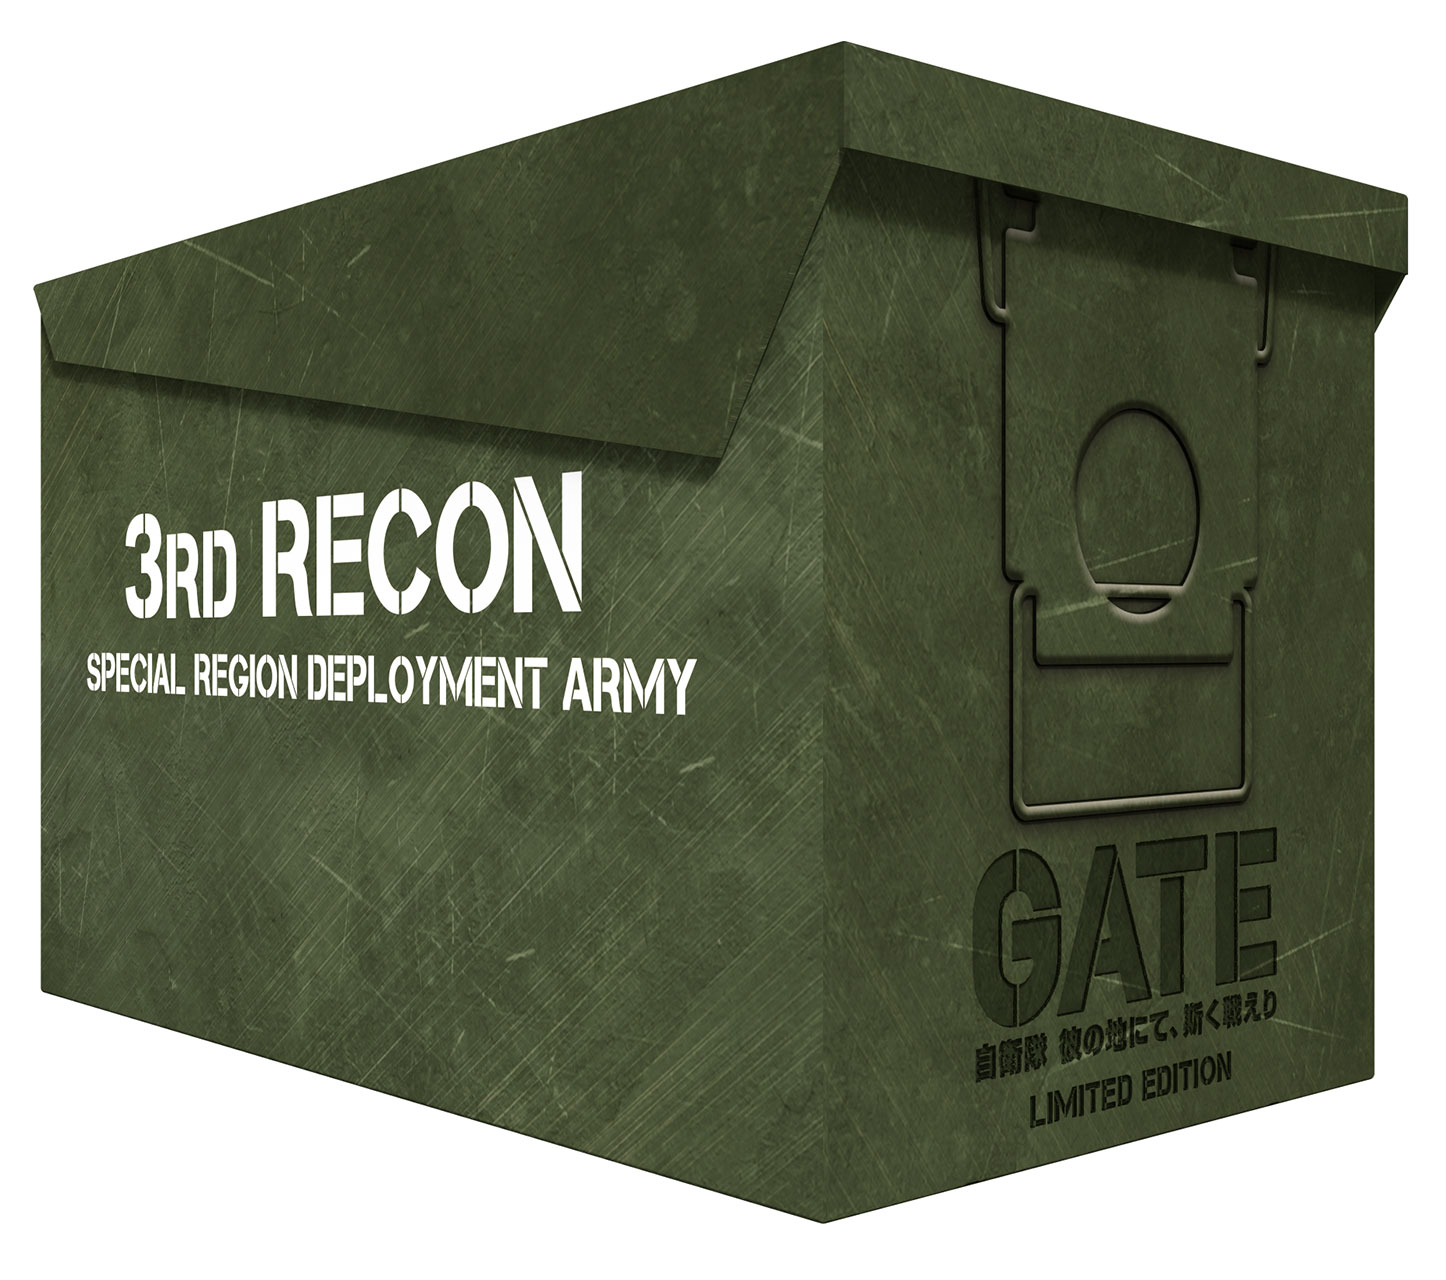 GATE Premium Edition Box Set Blu-ray/DVD 816726026602